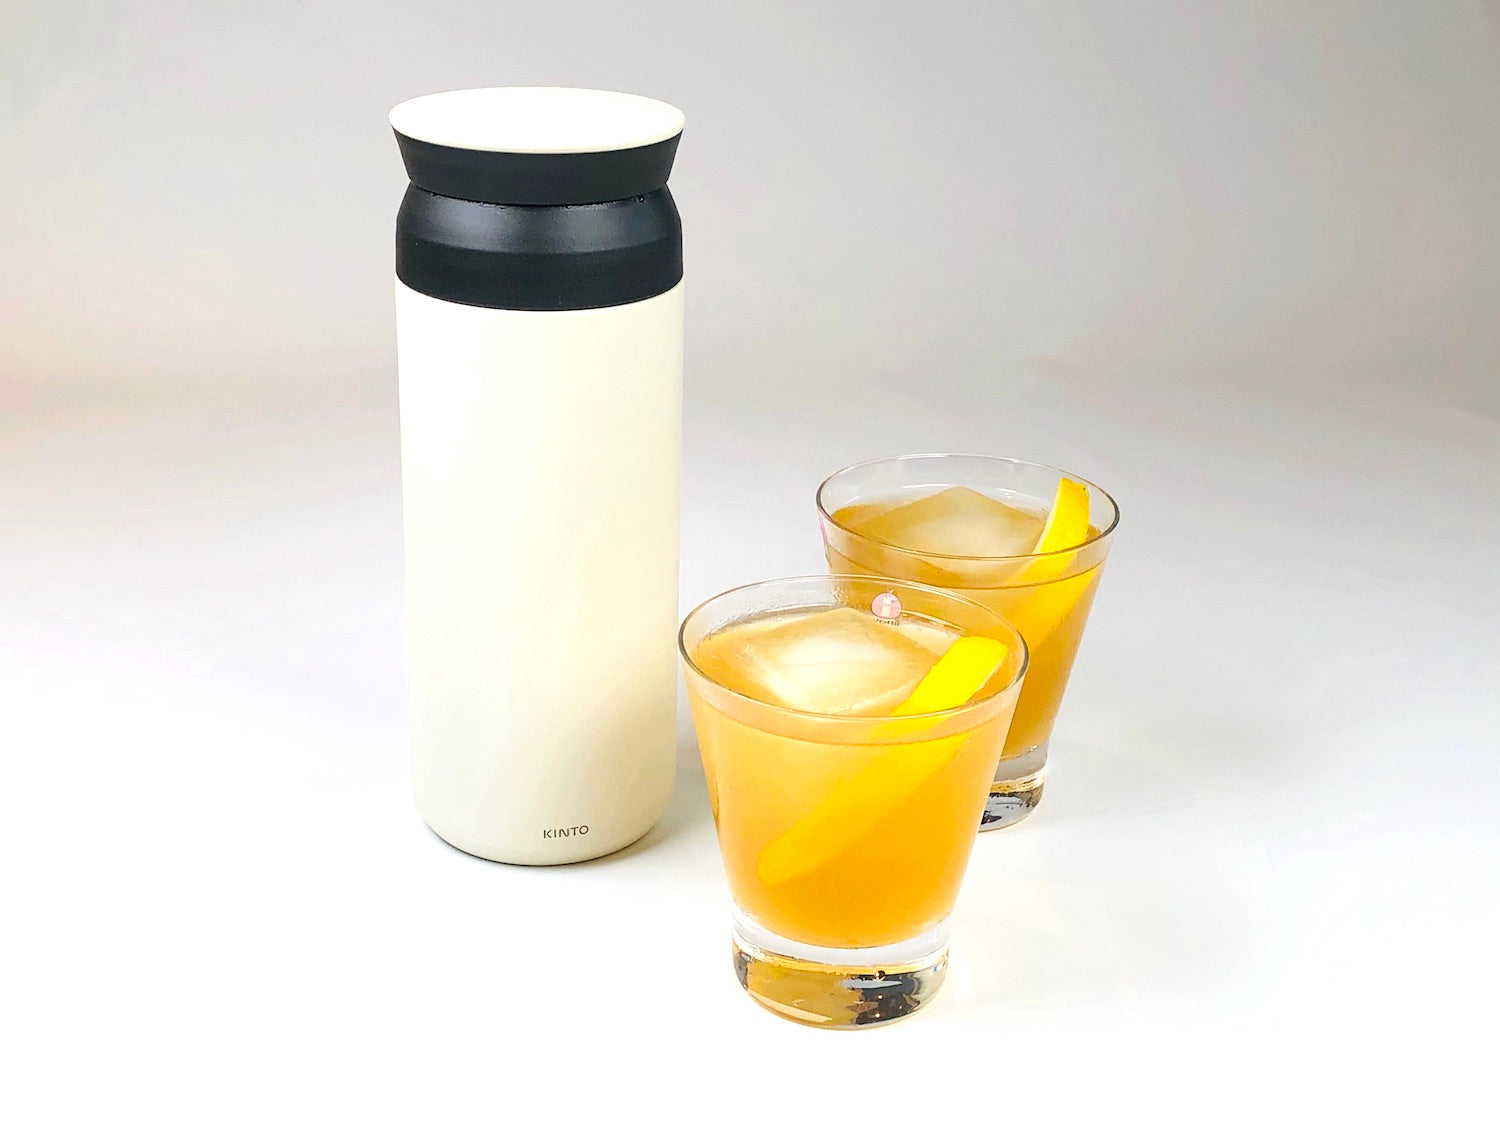 Kinto Travel Tumbler and Cocktails